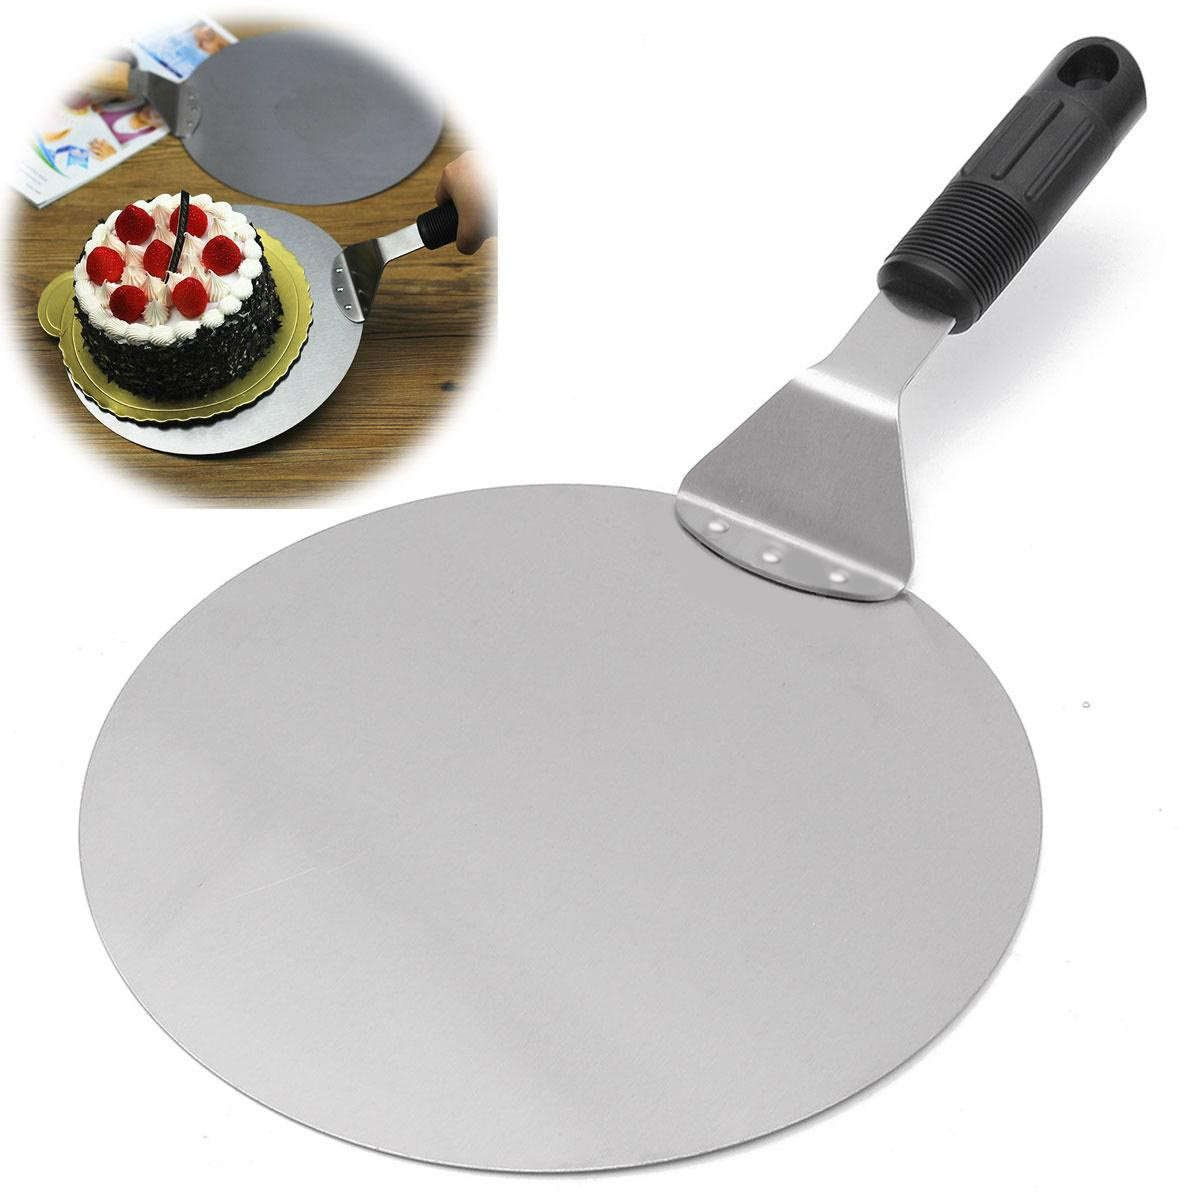 New Cake Pizza Transfer Shovel Baking Tools Stainless Steel Paddle Spatula Tray Pizza Moving Plate Pan Tableware Tools